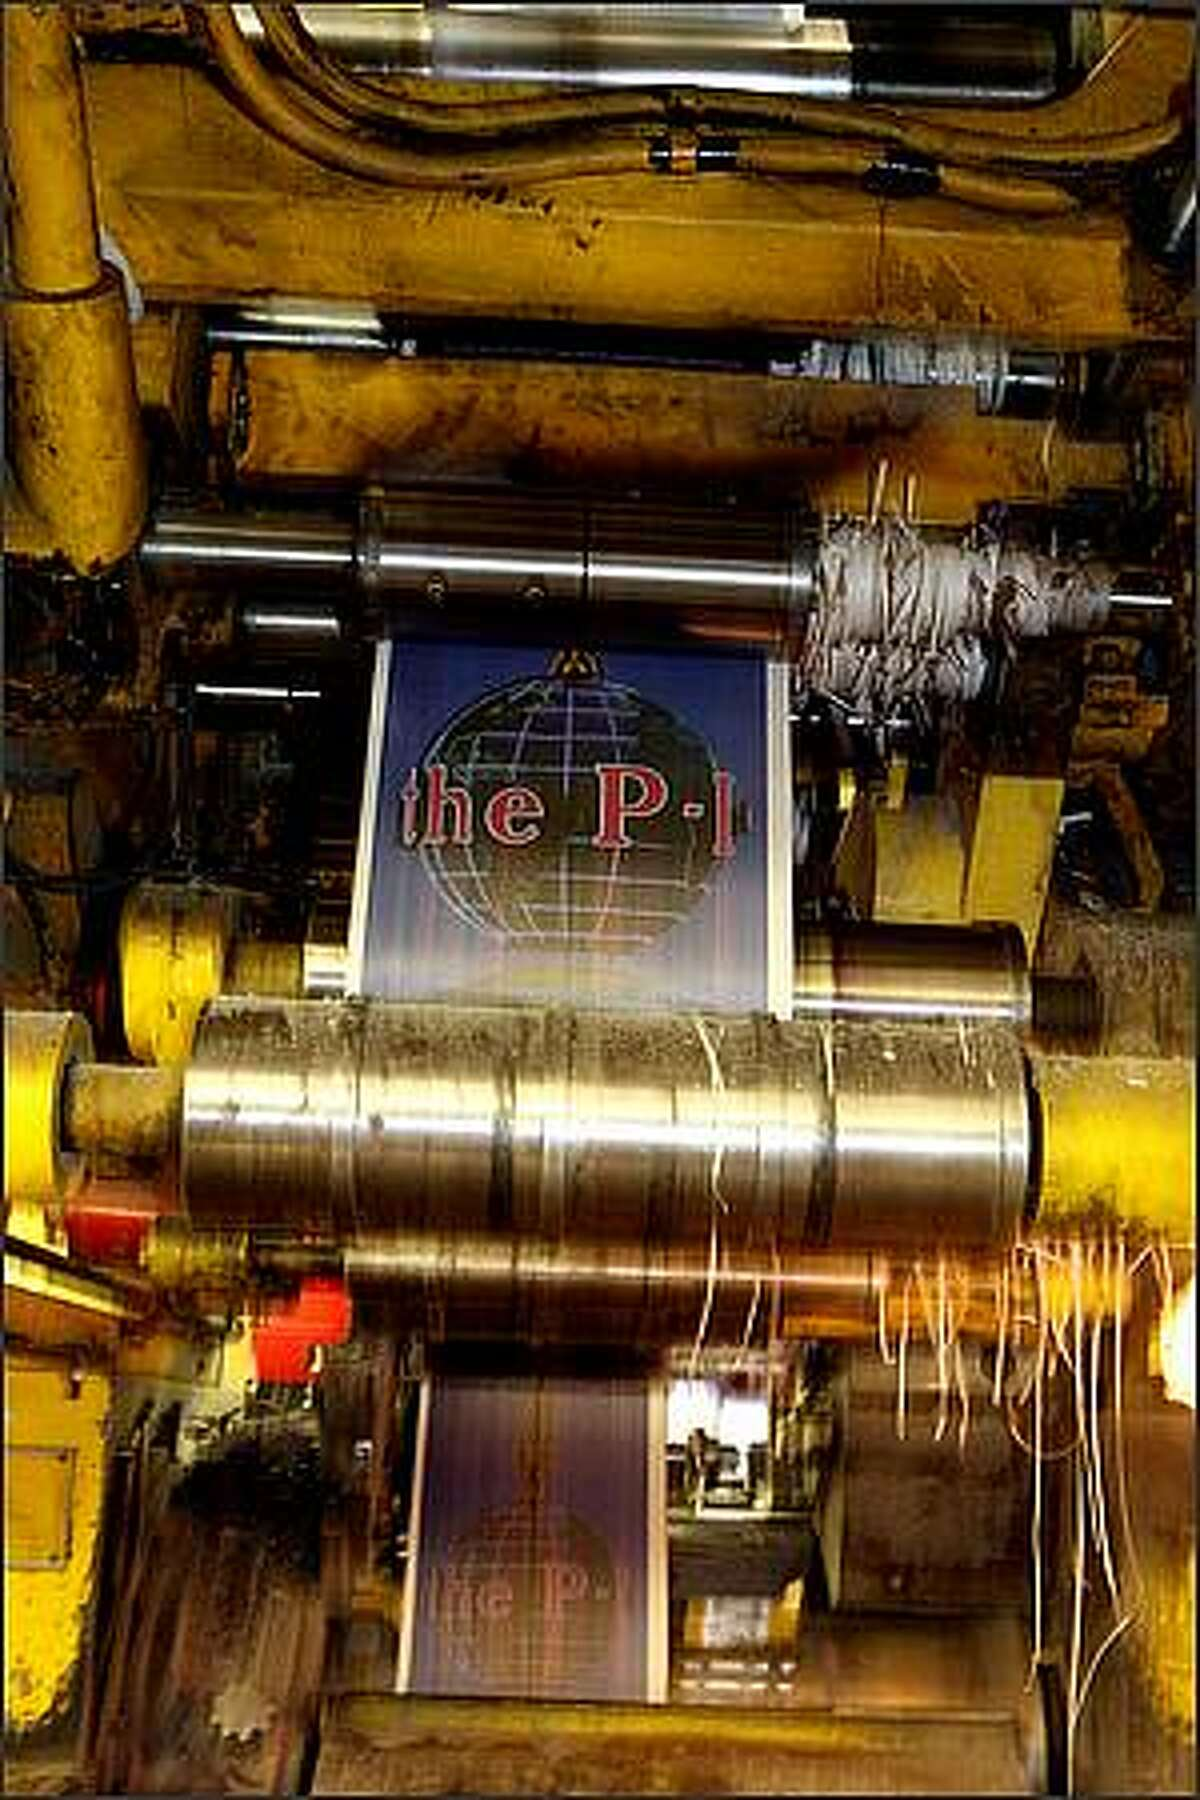 Printing presses print the final edition of the Seattle Post-Intelligencer at the Seattle Times North Creek facility in Bothell, Washington on March 16, 2009. The Seattle Post Intelligencer has been publishing since 1863.